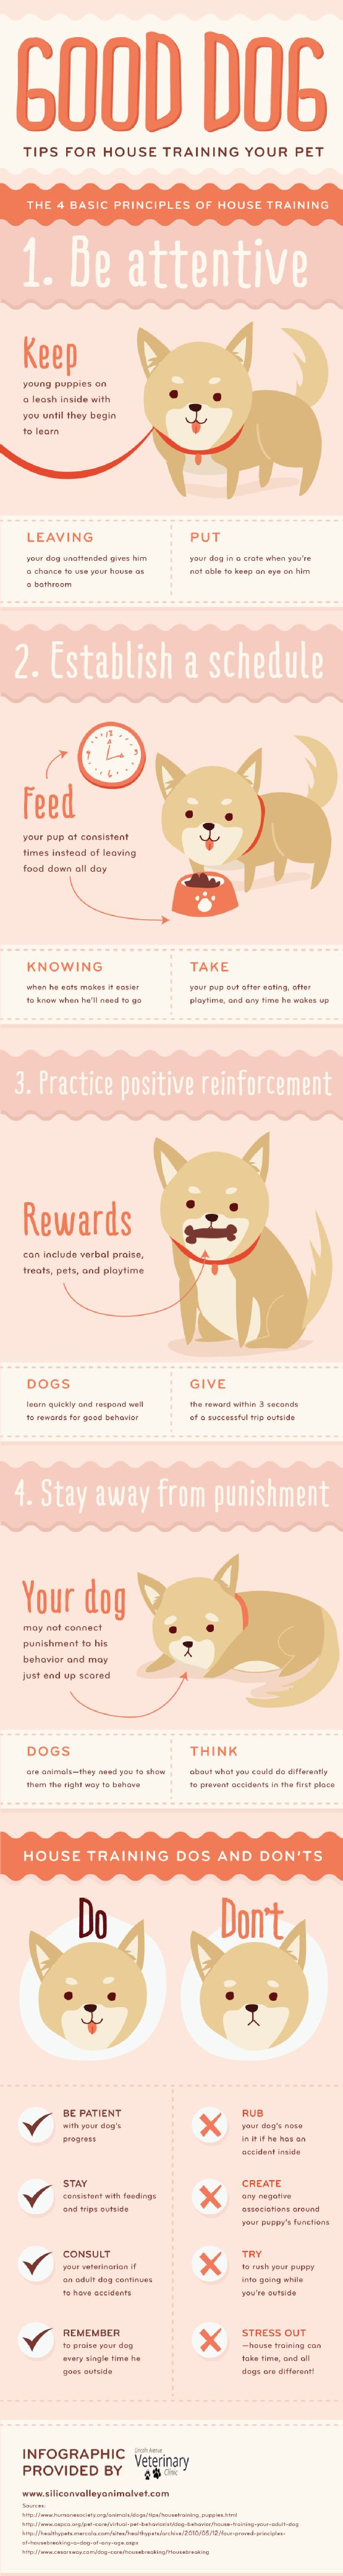 It is important to praise your dog every single time he goes outside. This will help him understand the importance of going outside instead of in the house. Learn more by checking out this infographic from a veterinary clinic in San Jose.